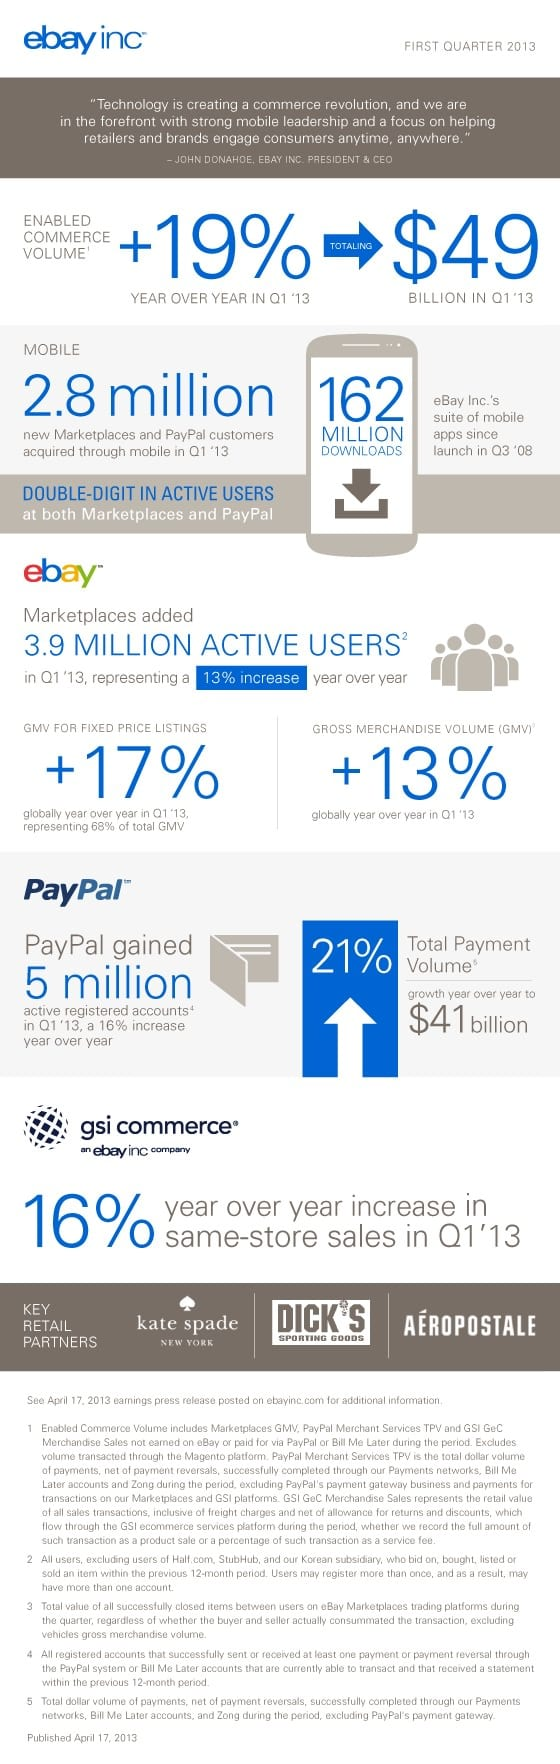 eBay case study Smart Insights Digital Marketing Advice